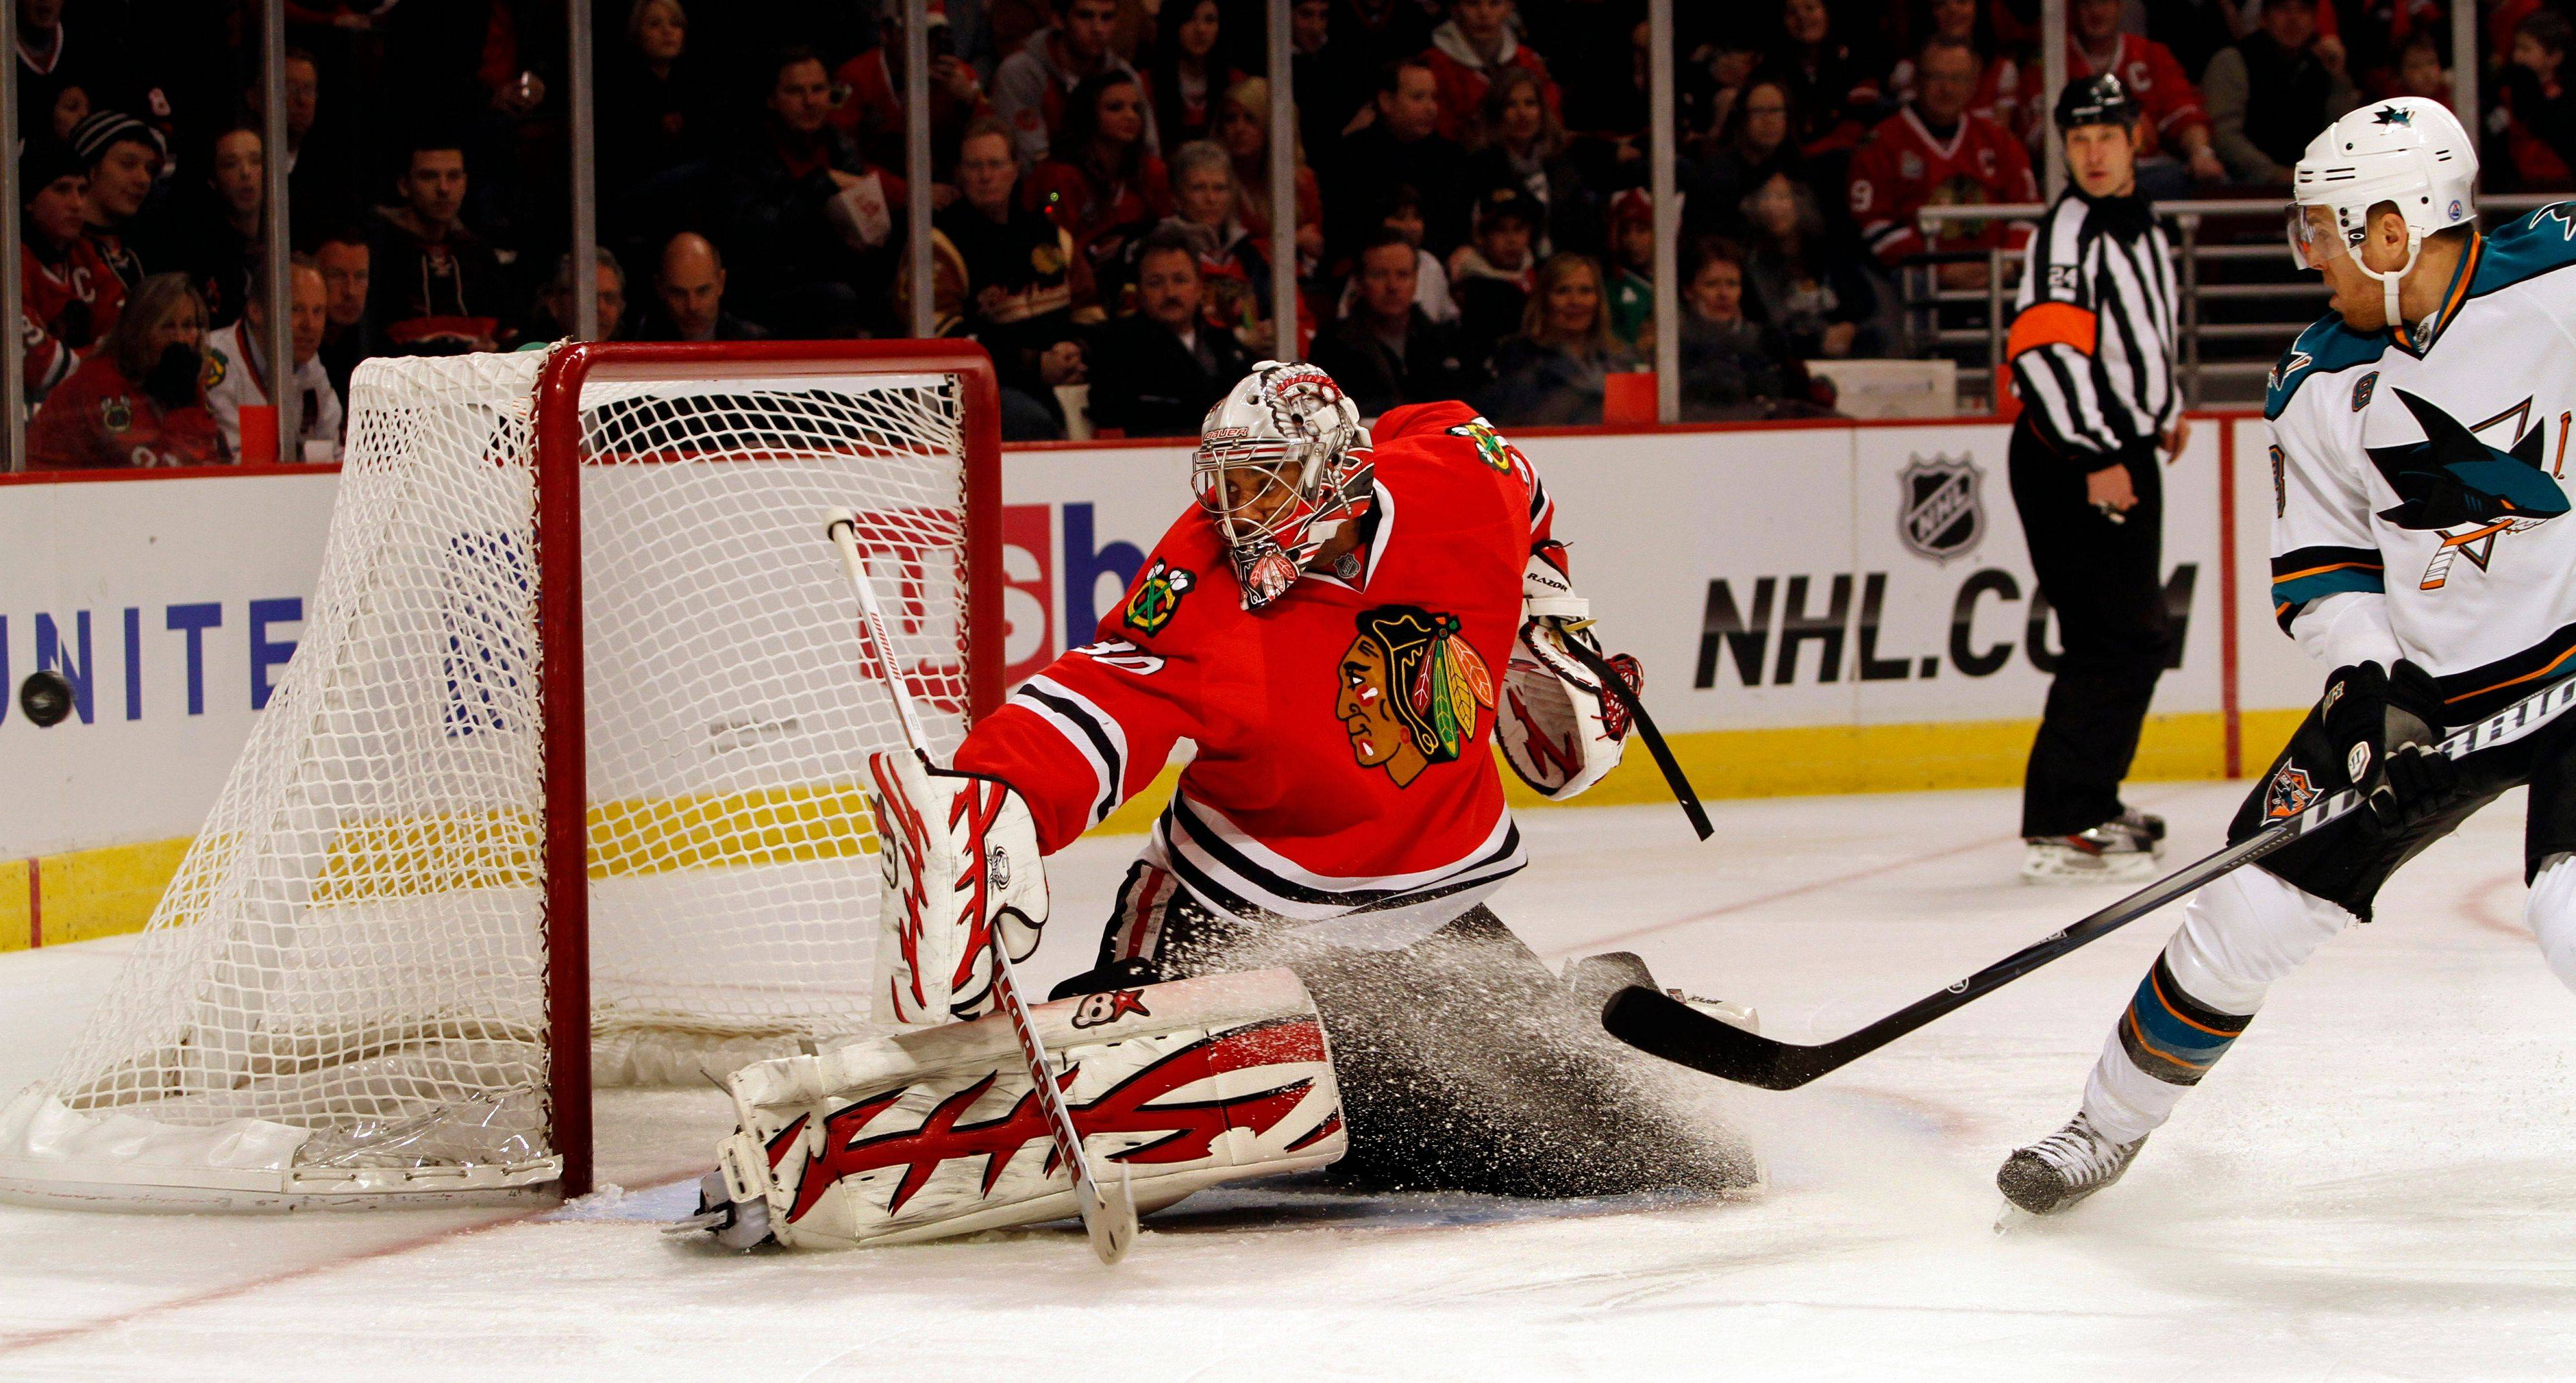 Goalie Ray Emery kept the Blackhawks close to the Sharks on Sunday, making 31 of his 35 saves in the first 40 minutes. Here he stopped a shot from Joe Pavelski in the first period.